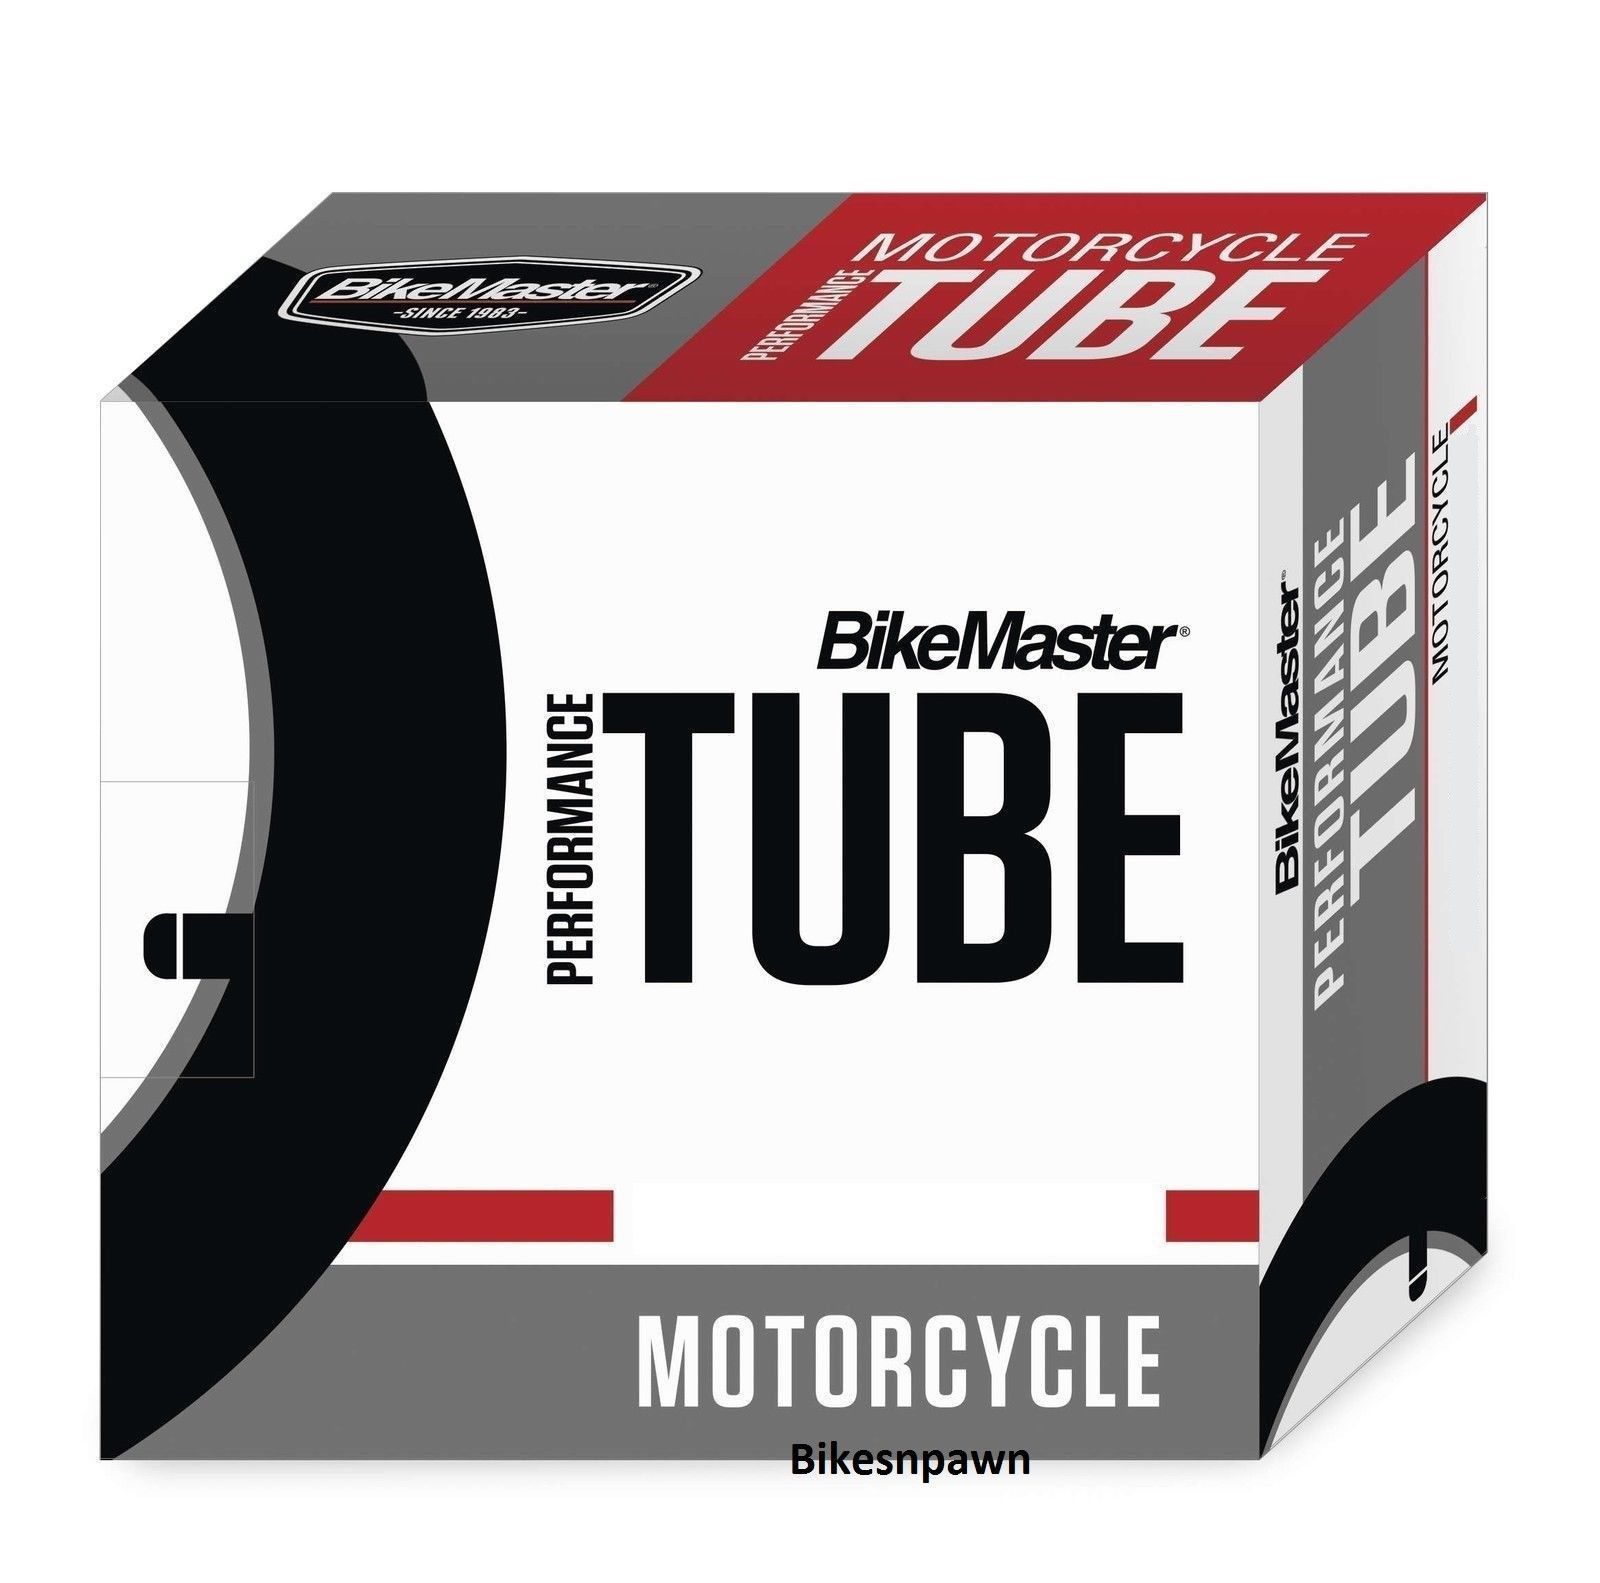 New BikeMaster 325/350/410-18 TR6 Center Metal Valve Stem Motorcycle Tire Tube